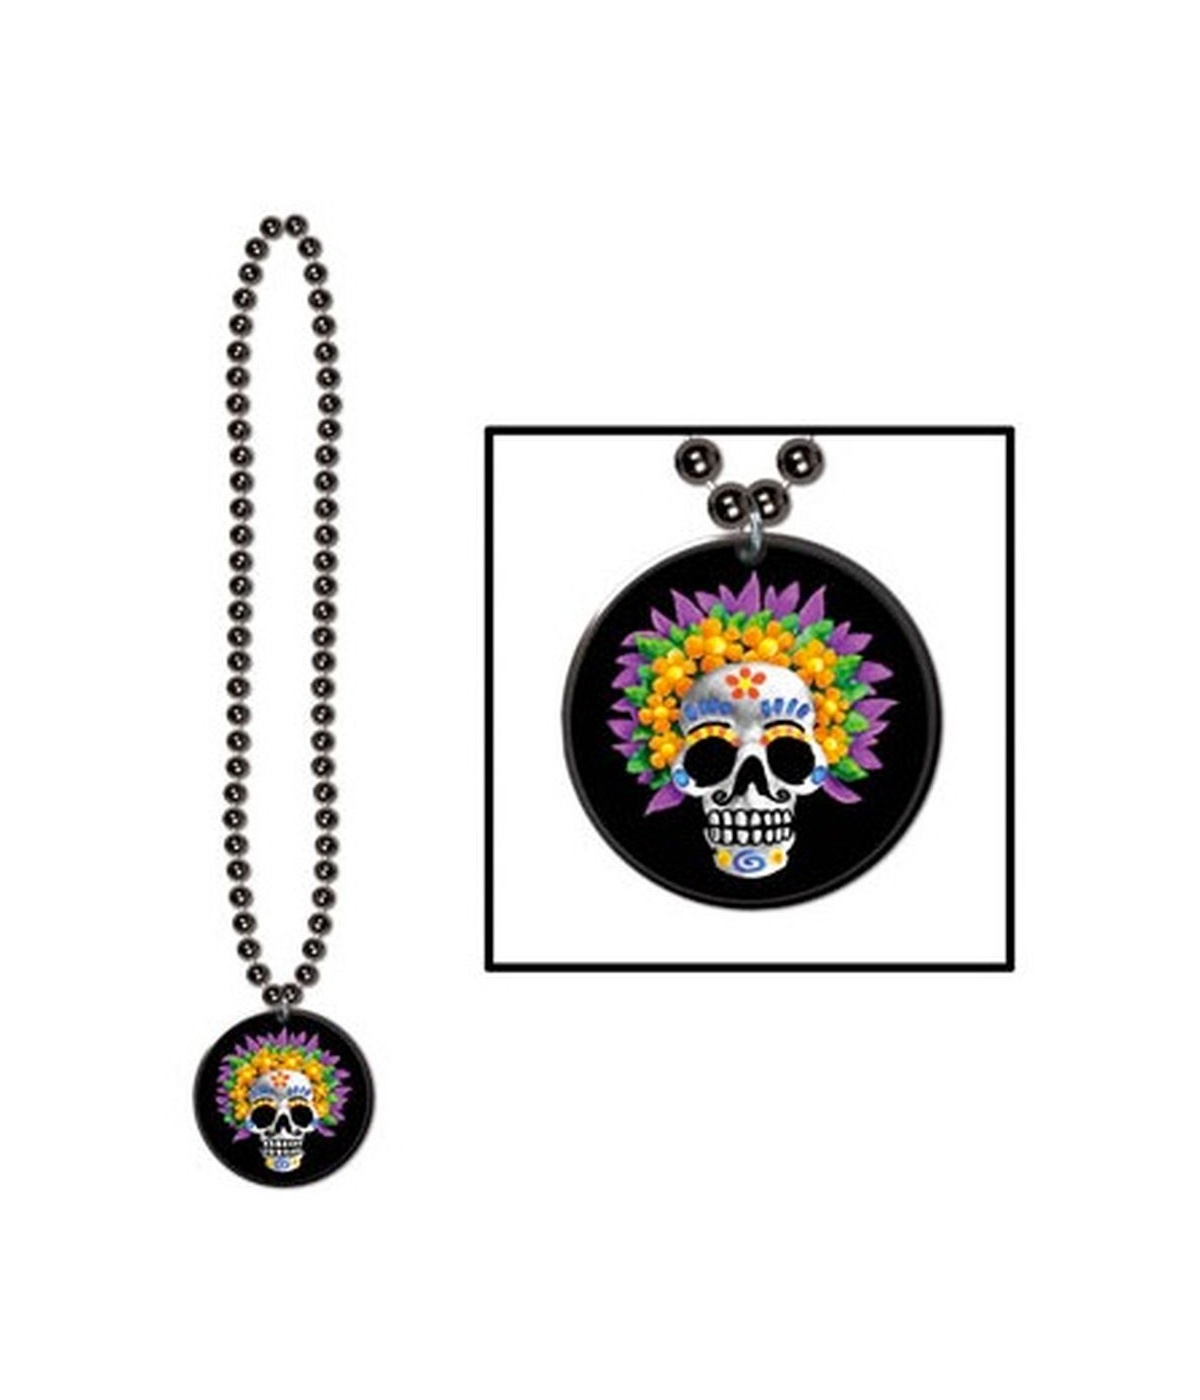 Day of the Dead Beads Medallion